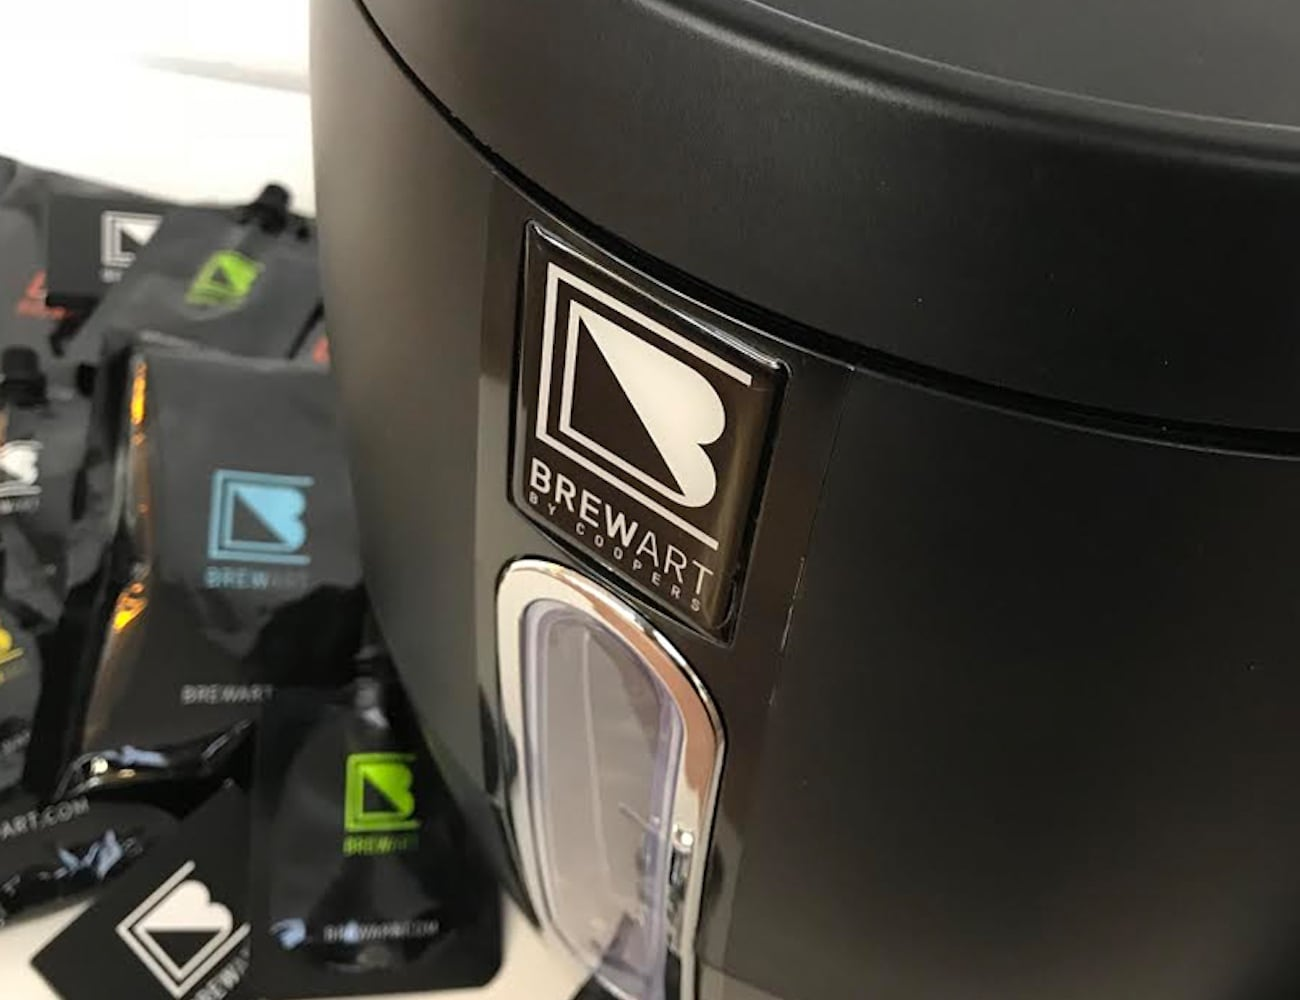 BrewArt Automated Personal Brewing System